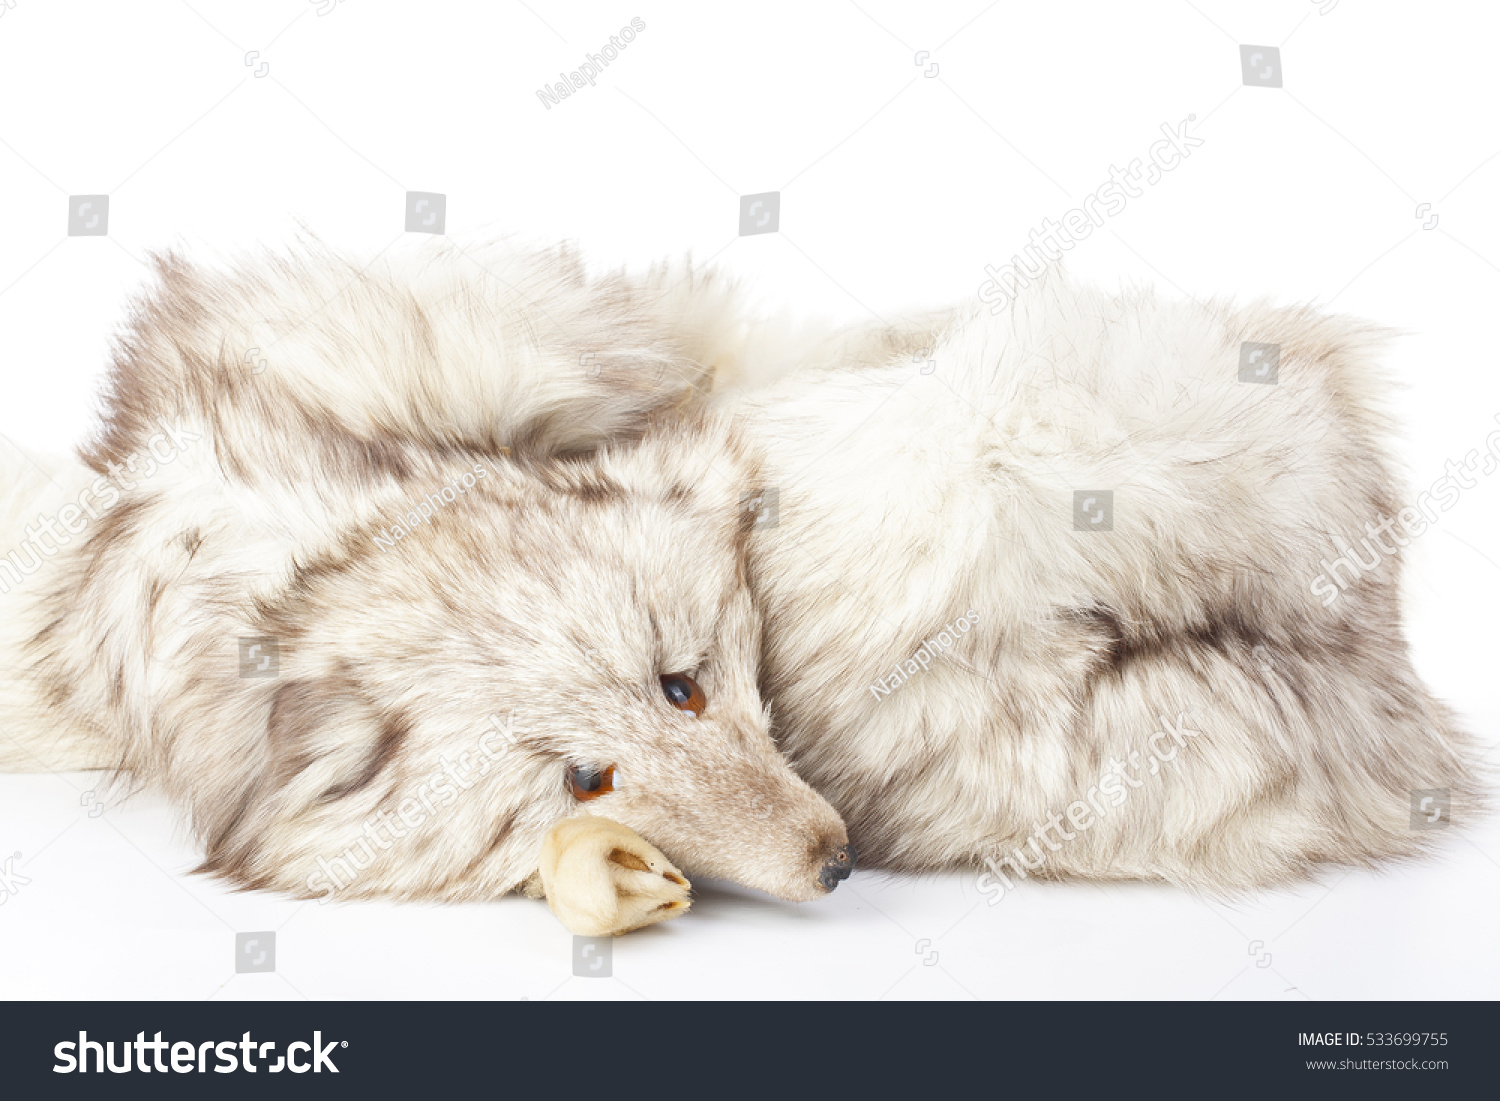 killing animals for fur 31 million animals are raised and killed on fur farms each year mink account for  26 million, fox 41 million chinchillas, racoon dogs (not to be confused with the.